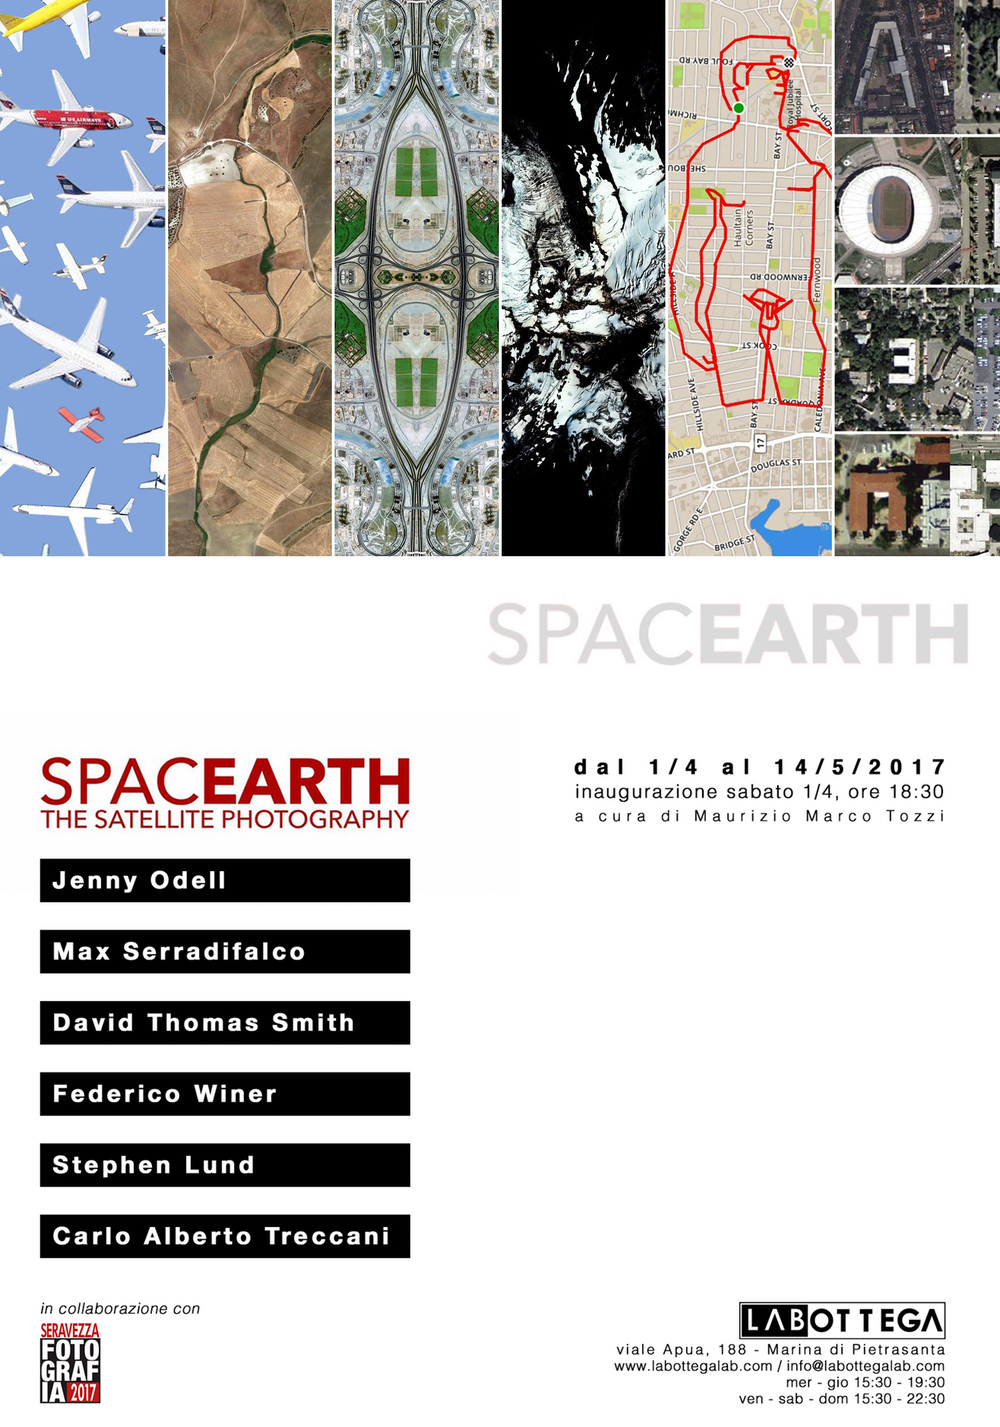 SpacEarth Exhibition. La Bottega Gallery. Marina di Pietrasanta, Toscana, Italy. Opening April 1st - 6:30pm.